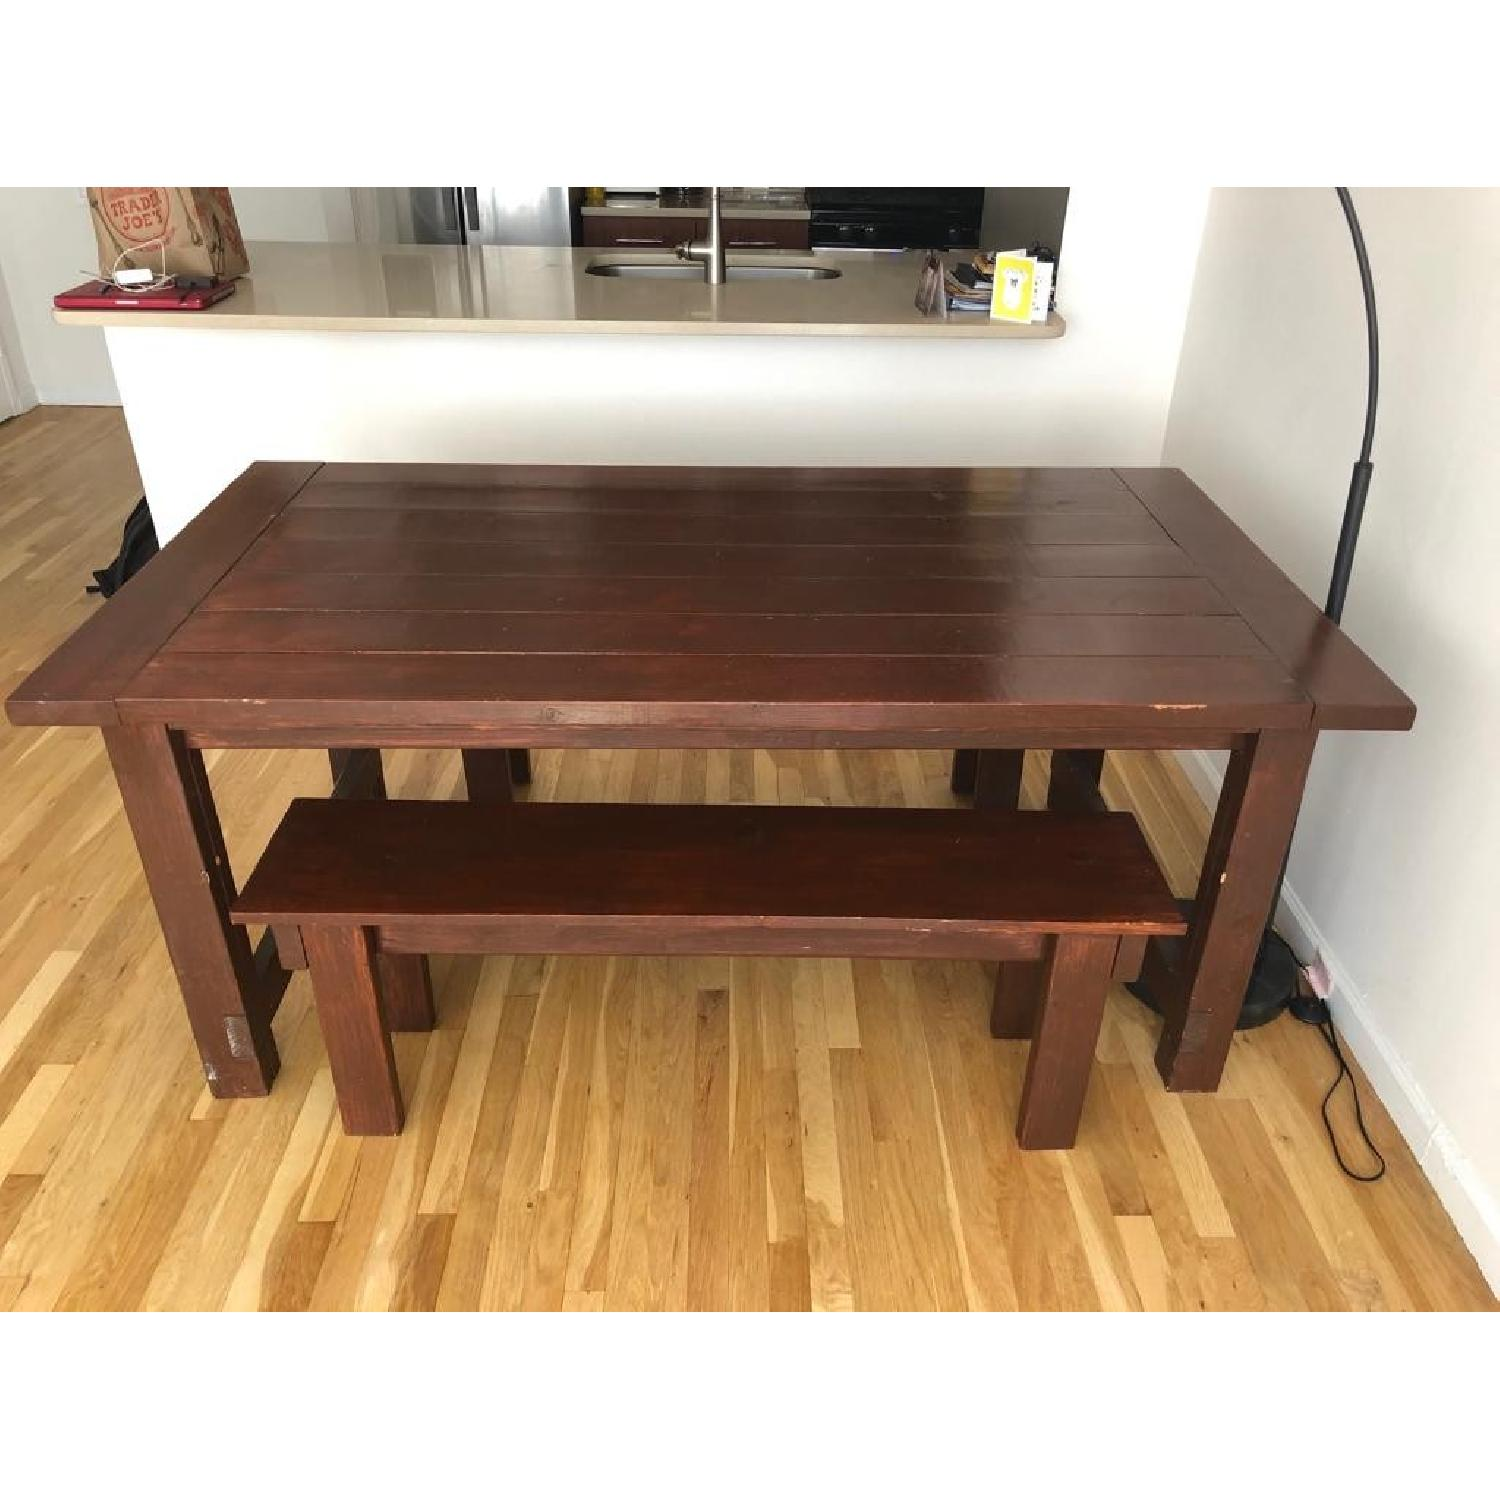 Custom Wood Farmhouse Rustic Dining Table w/ 2 Benches - image-3